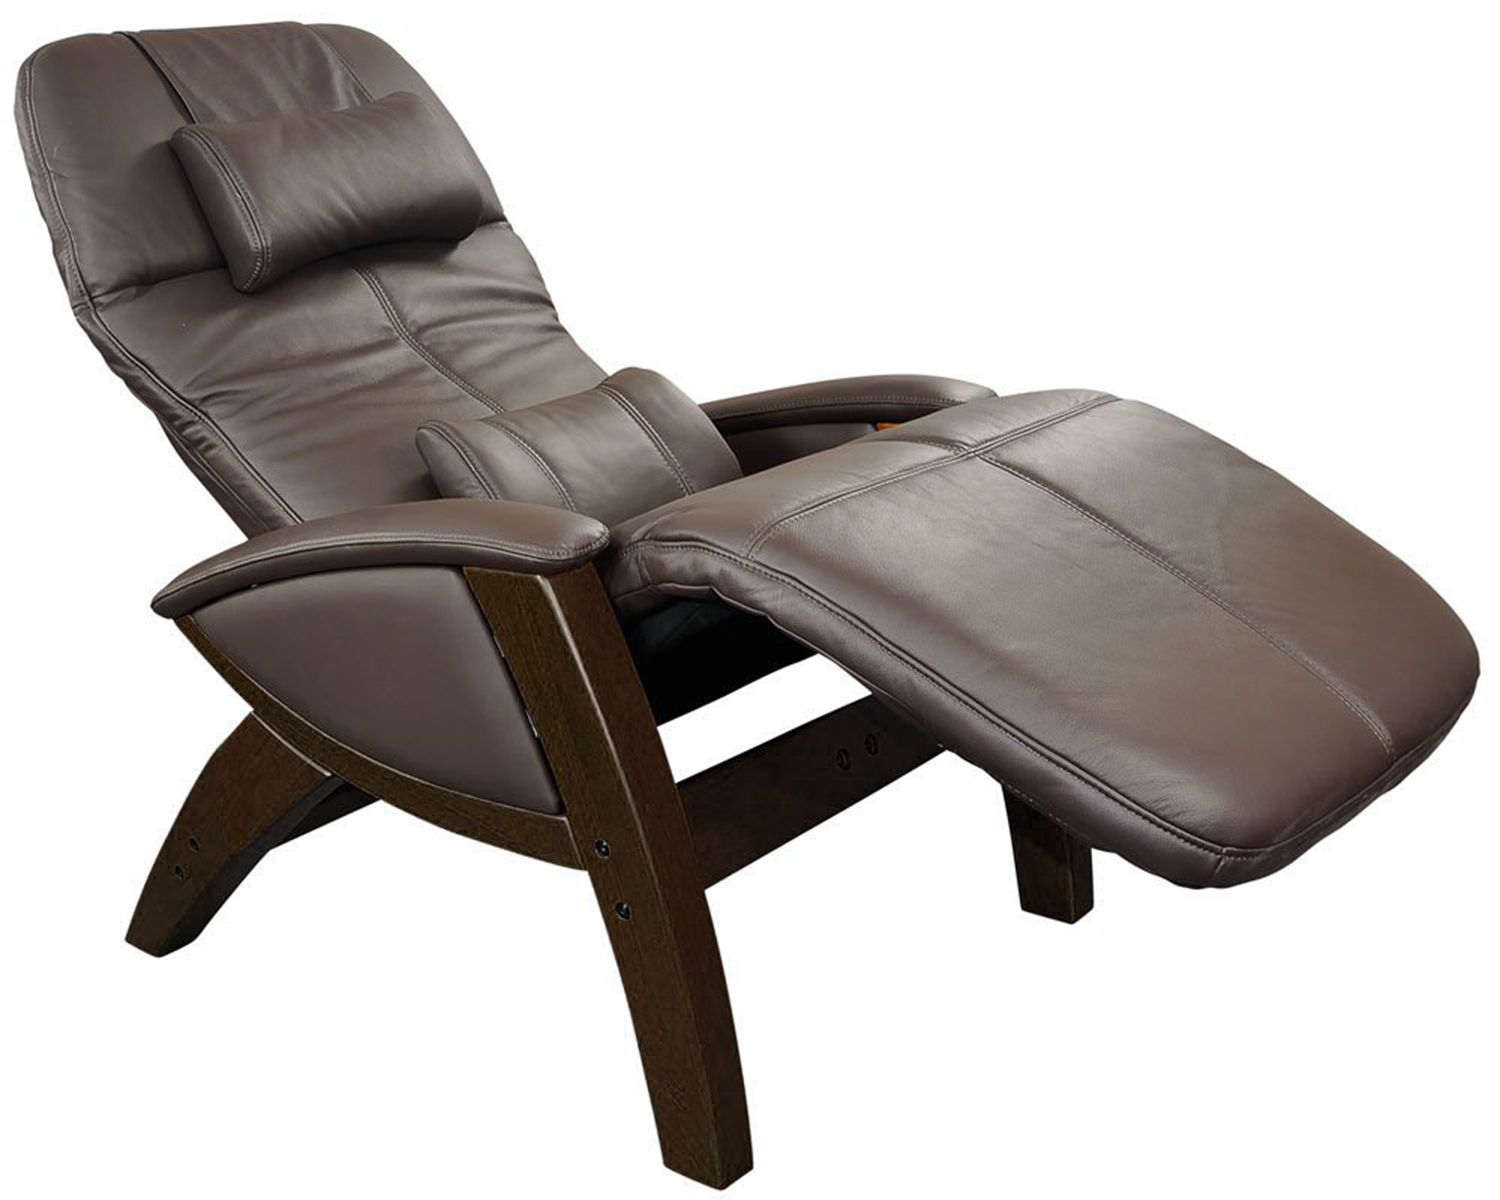 Amazing Chocolate Leather Svago SV400 Lusso Chair Zero Gravity Recliner zero gravity recliner